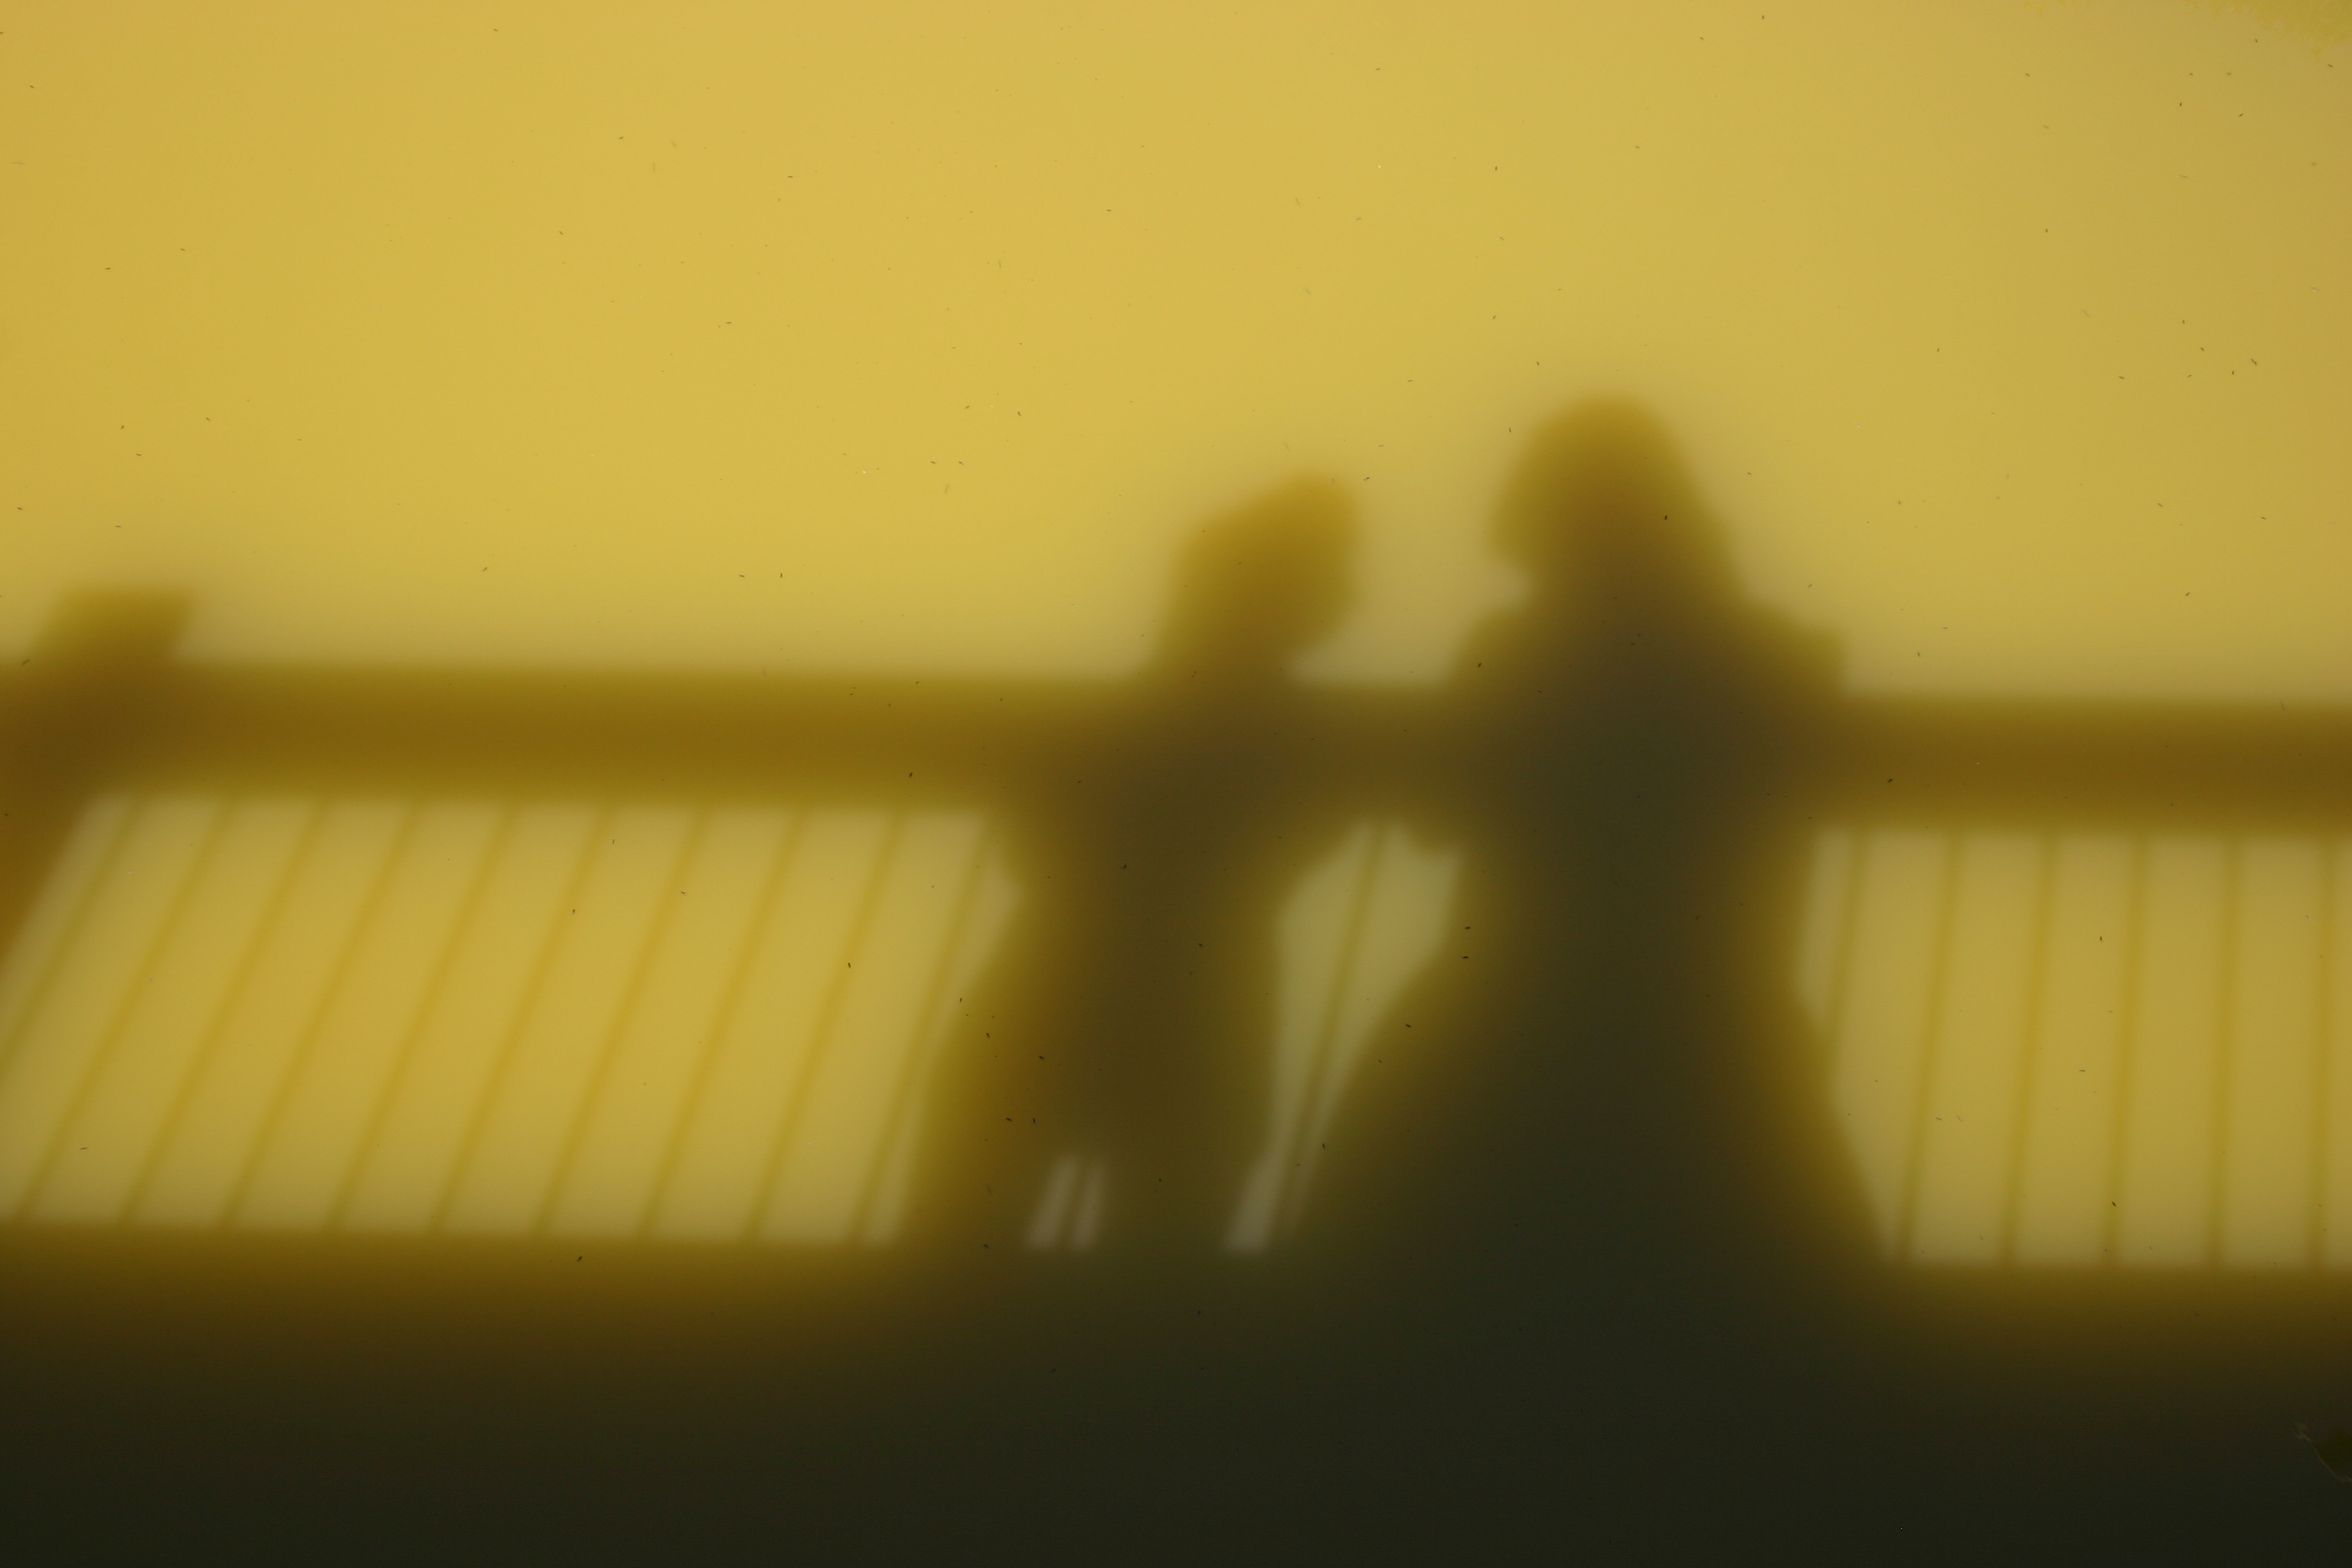 Shadows of two people on a bridge reflect in murky green water.